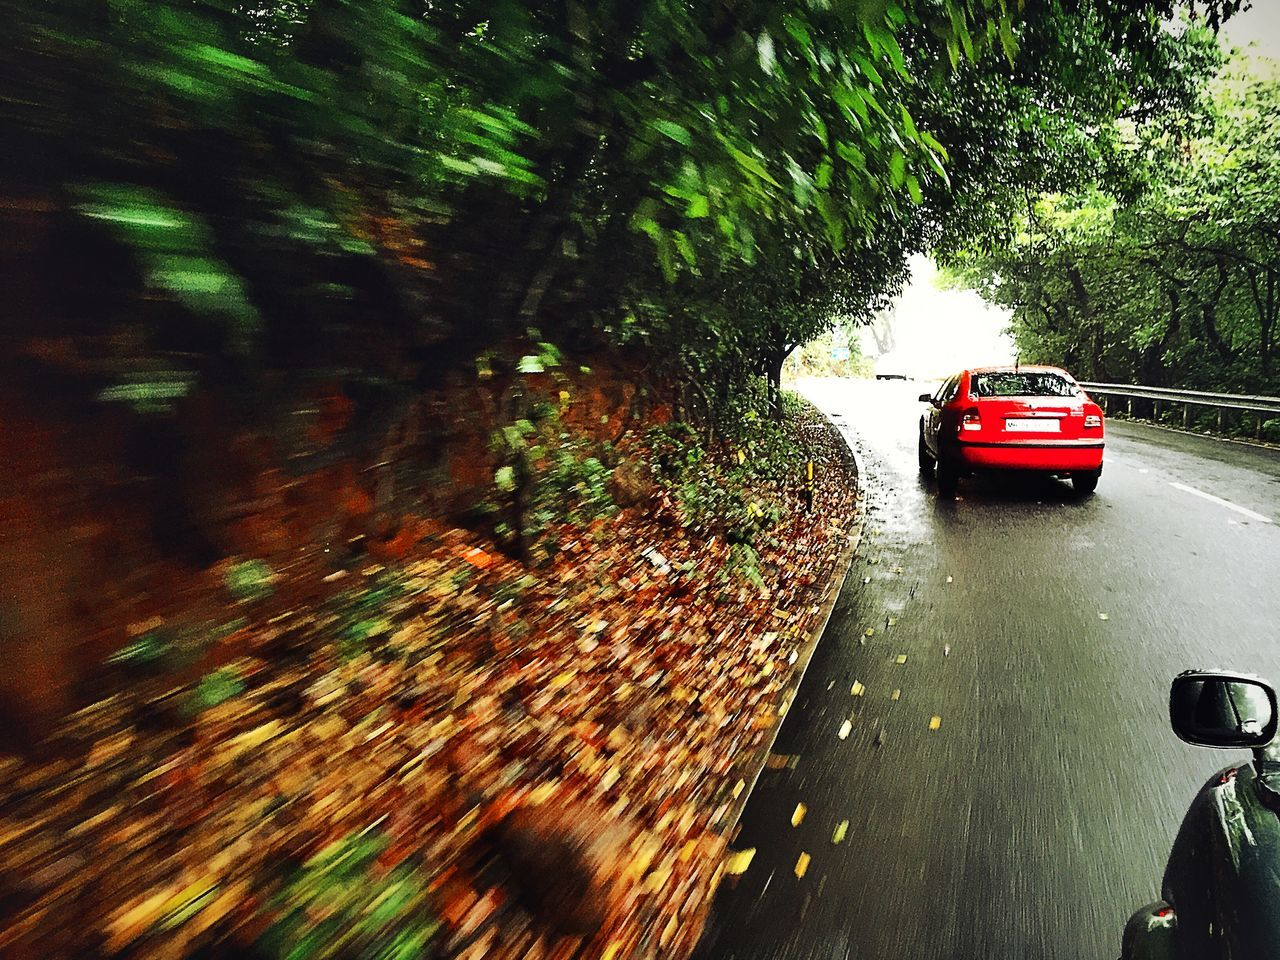 Cars Highway Rainy Days Amazing Scenery Shots